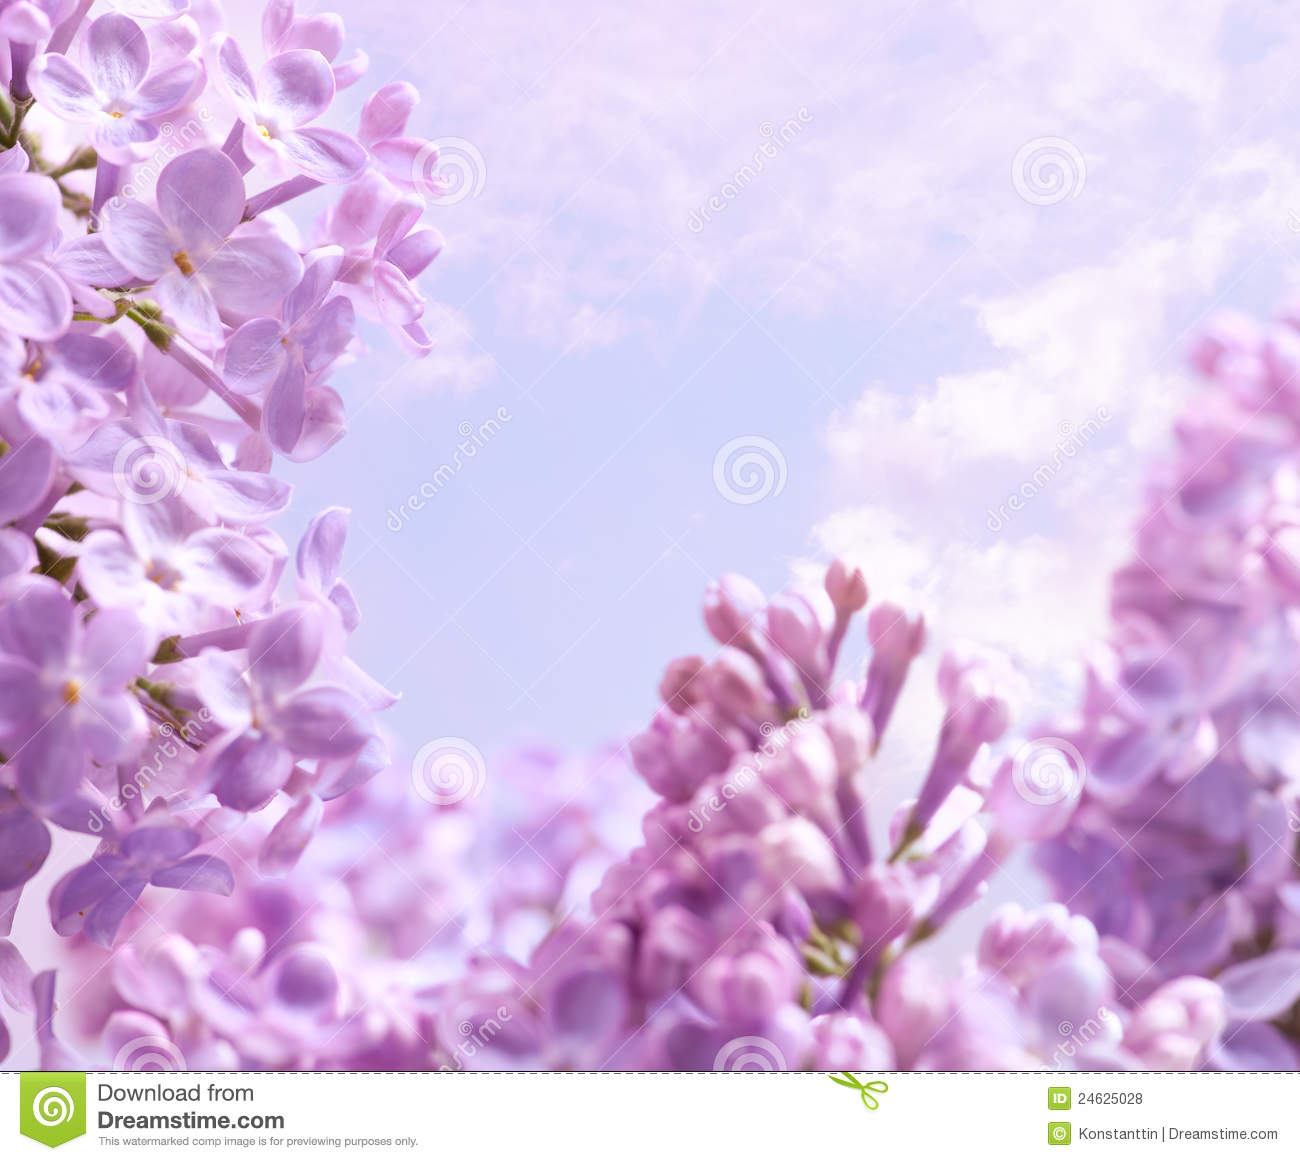 Lavender Color Wallpaper Hd Art Spring Lilac Flower Background Royalty Free Stock